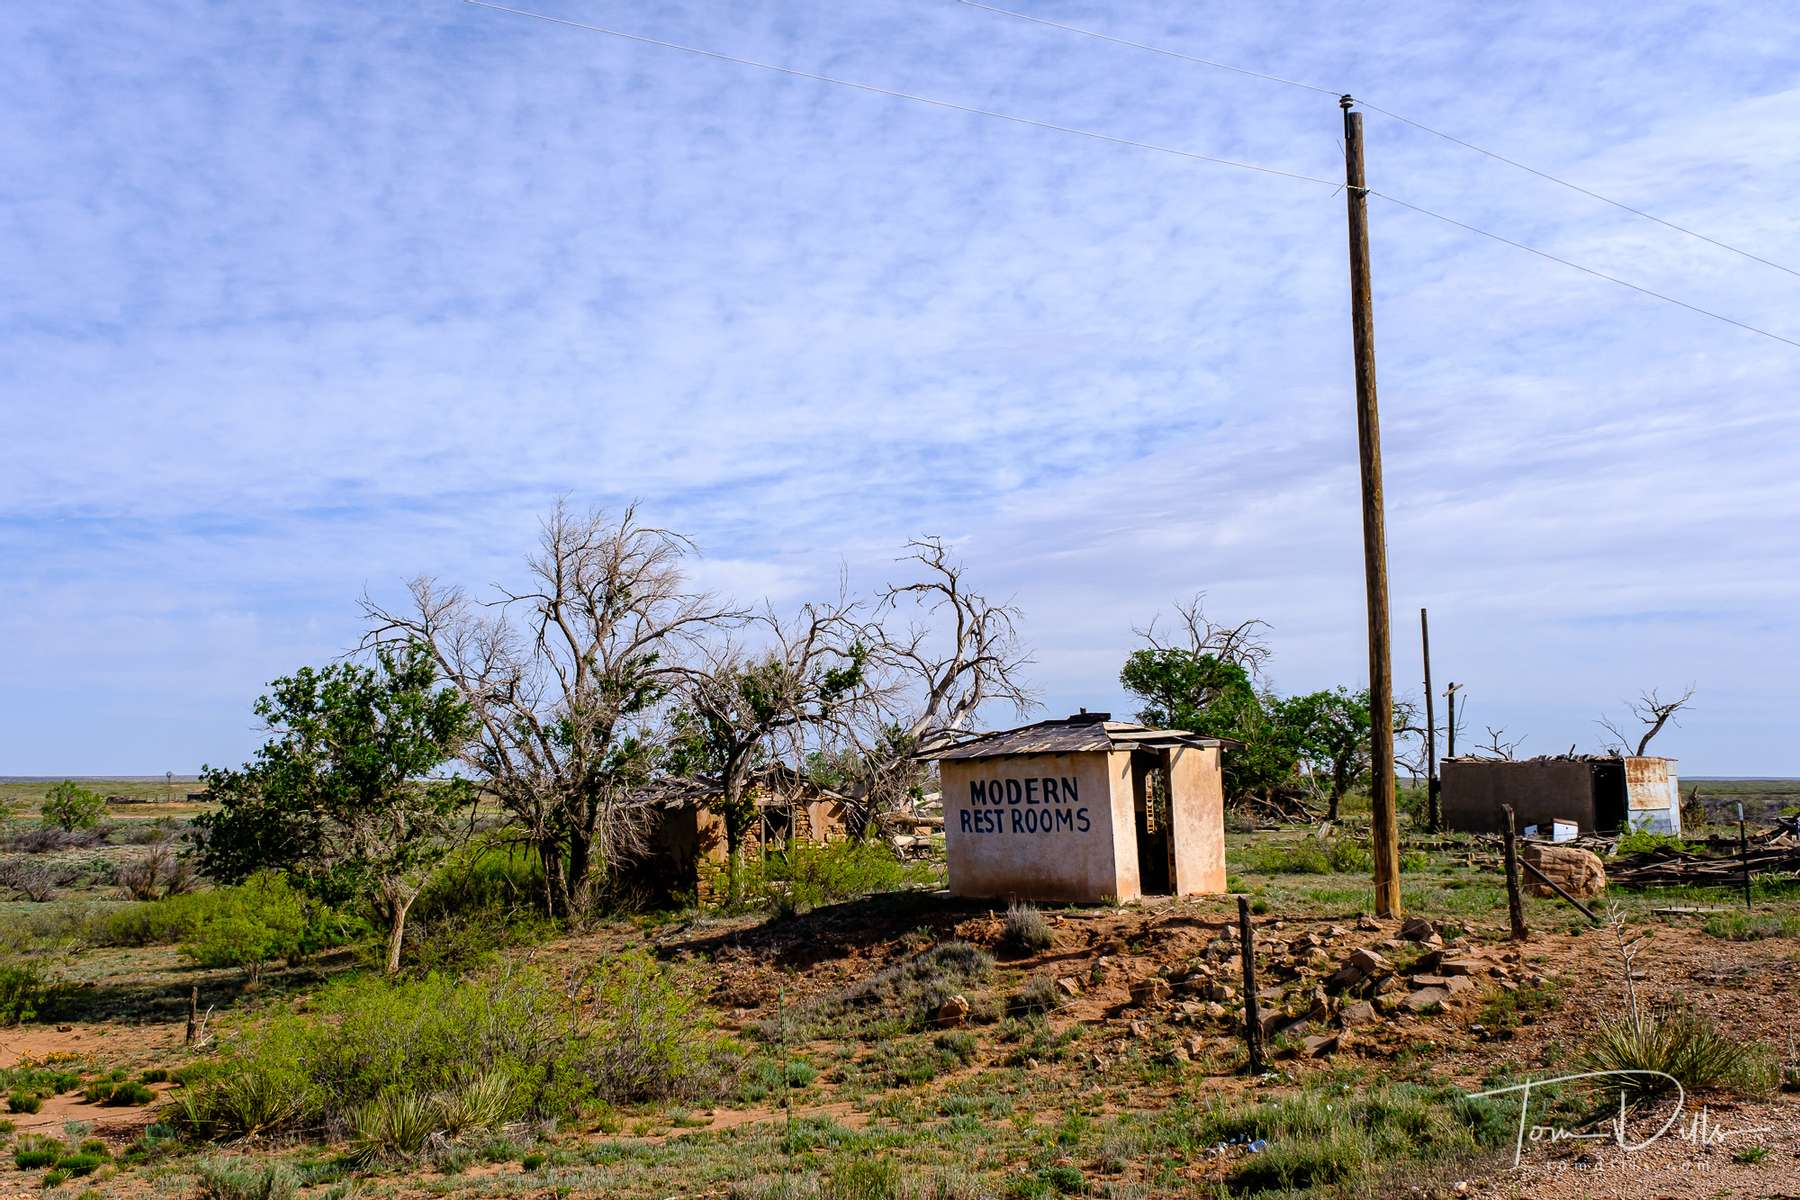 Abandoned buildings along a dirt road stretch of Historic Route 66 near the New Mexico-Texas border